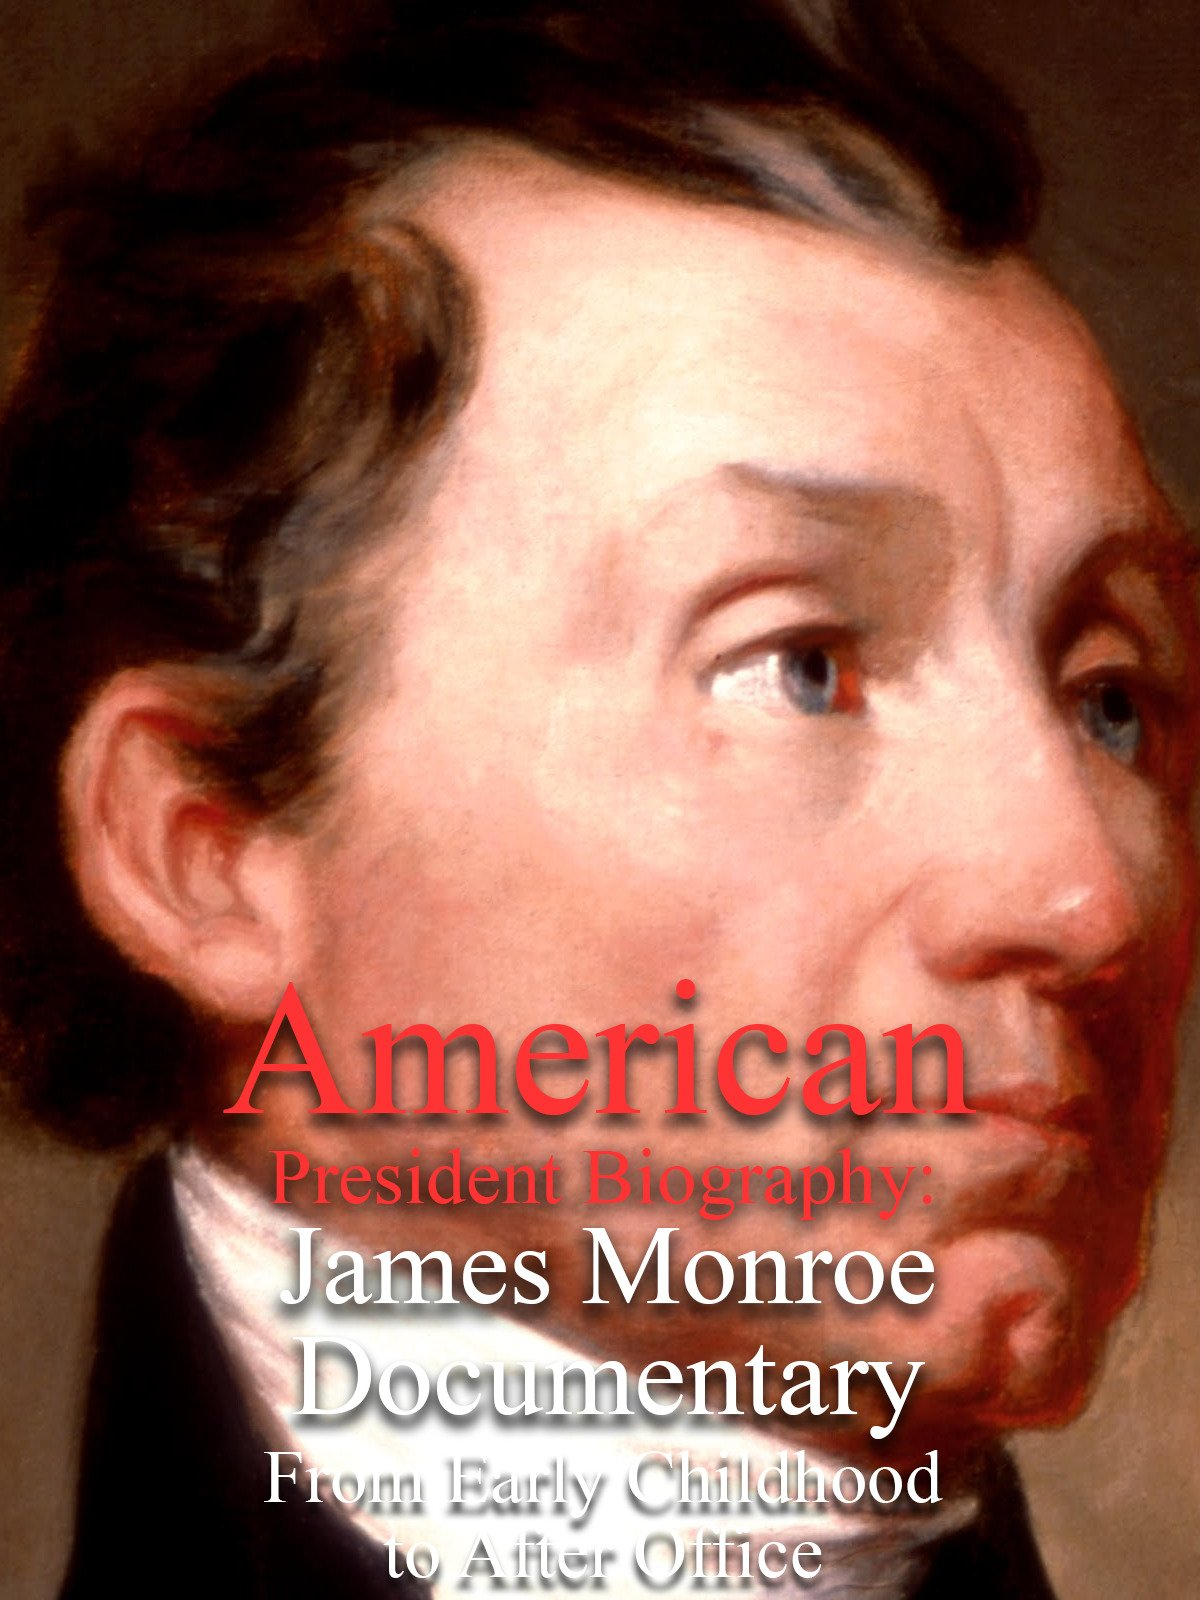 American President Biography: James Monroe Documentary From Early Childhood to After Office